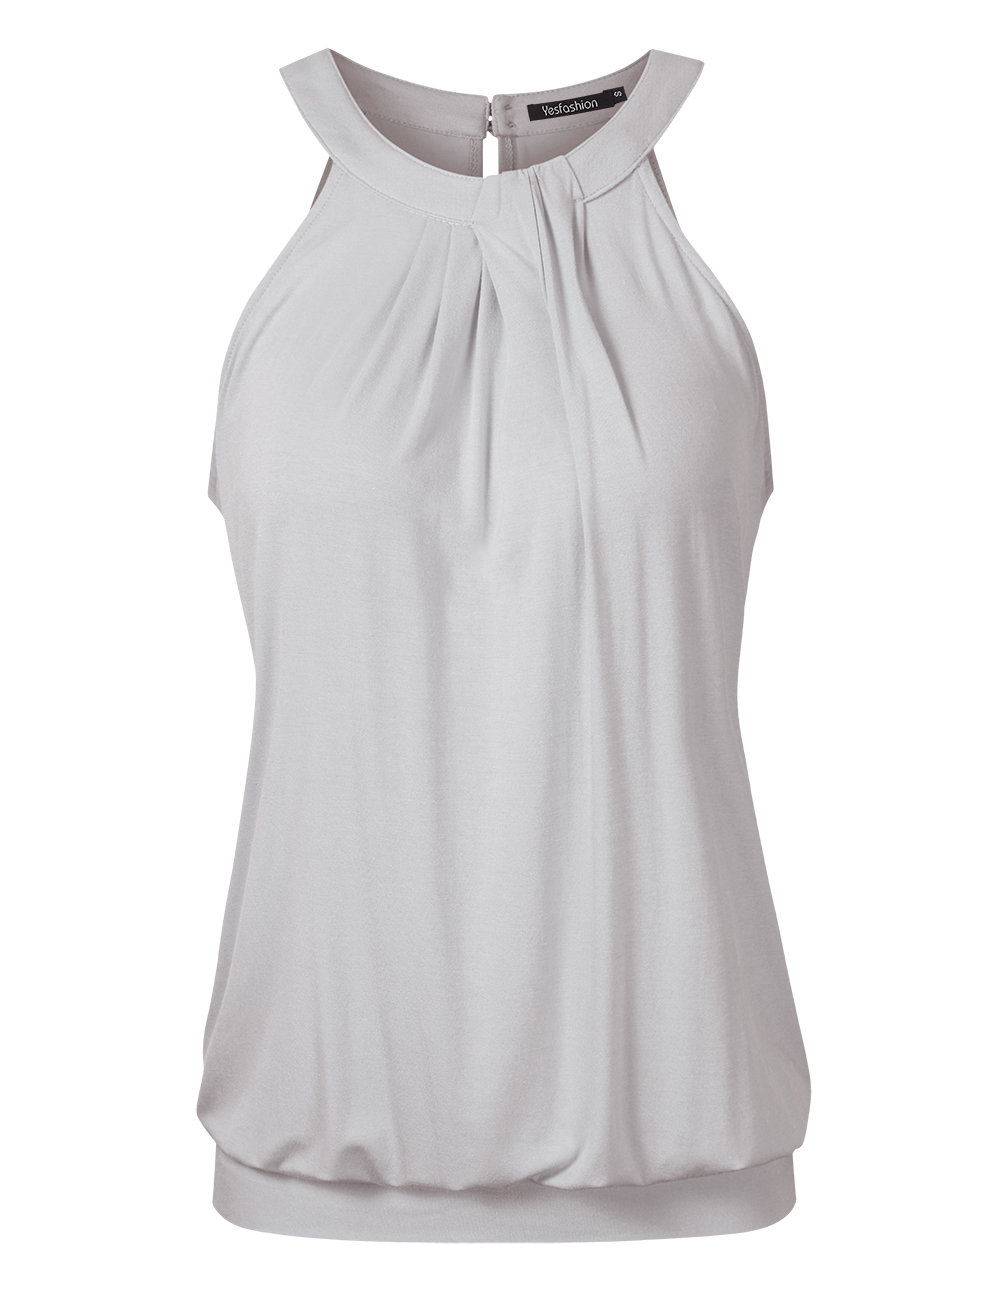 Yesfashion Women's Casual Halter Neck Sleeveless Solid Front Pleated Backless Sexy Top